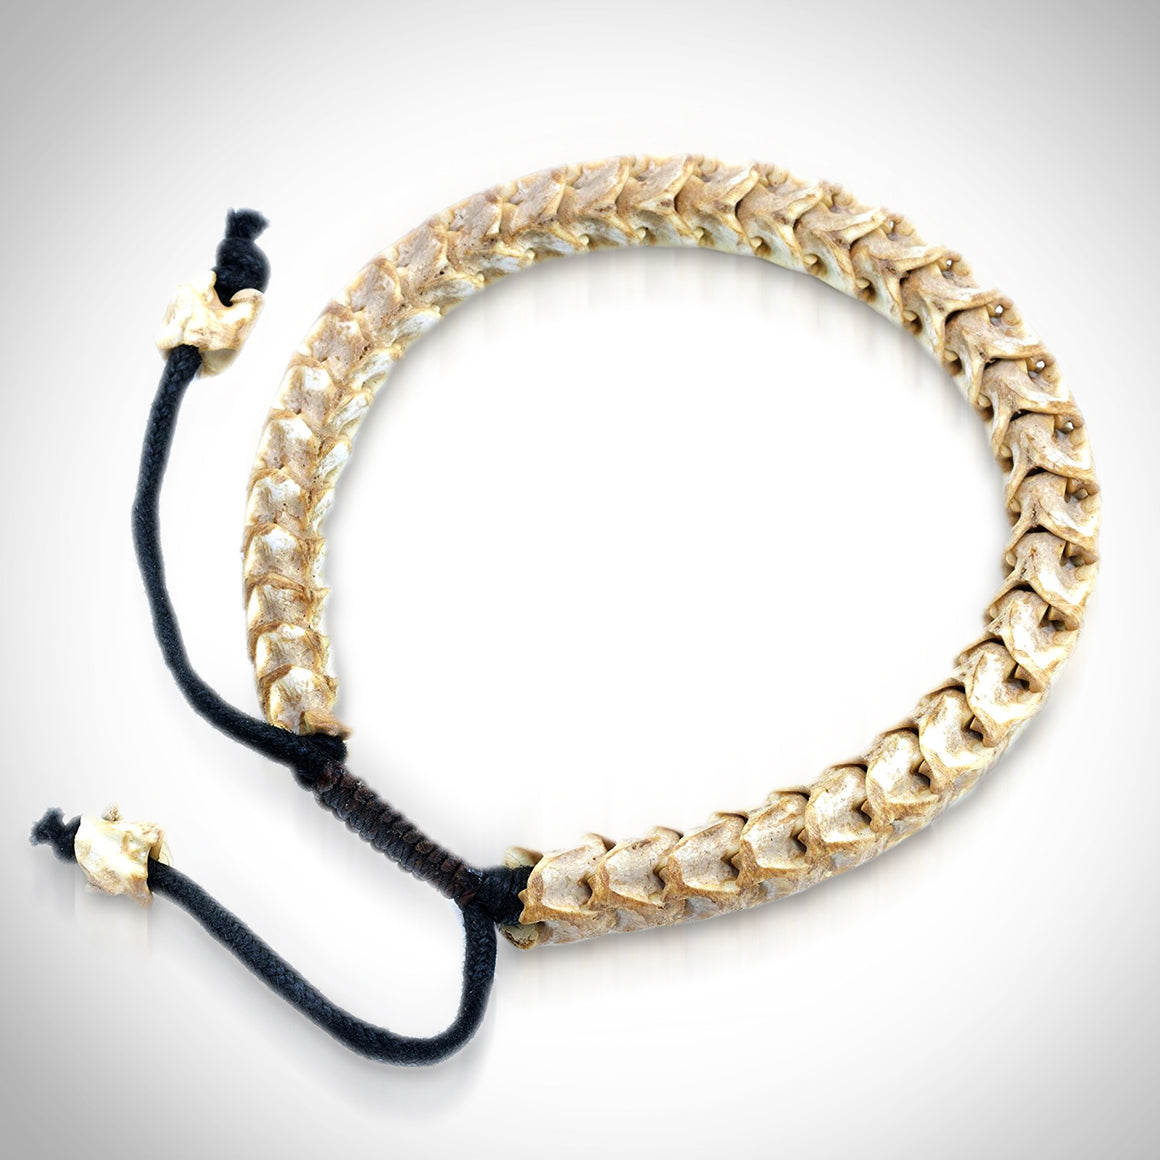 Authentic RATTLESNAKE BONE BRACELETS